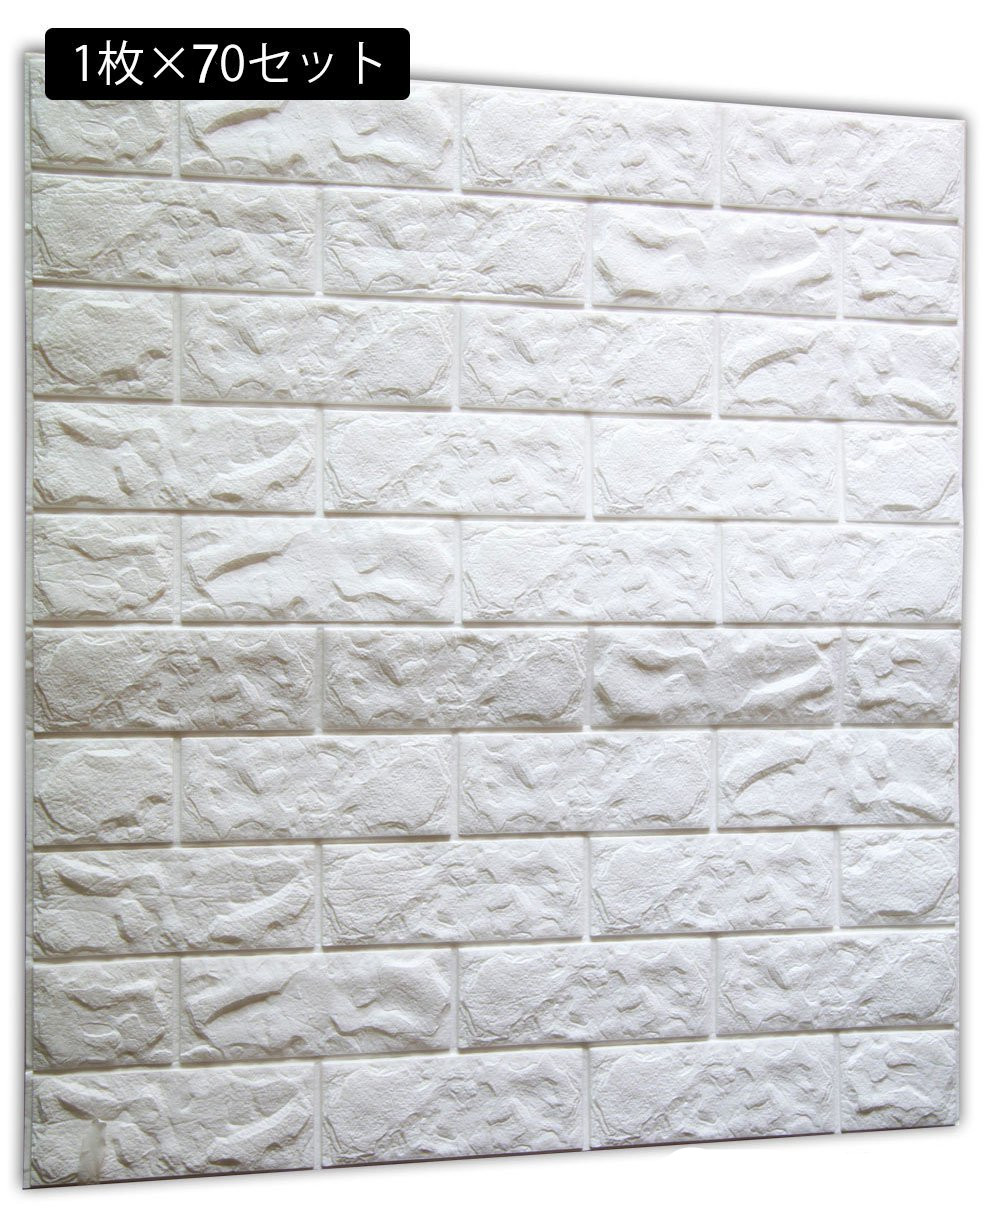 70 pcs PE Foam 3D Wallpaper DIY Wall Stickers Wall Decor Embossed Brick Stone Brick pattern 3D Textured PE Foam Wallpaper Wall stylish dolphin pattern 3d wall sticker for home decor